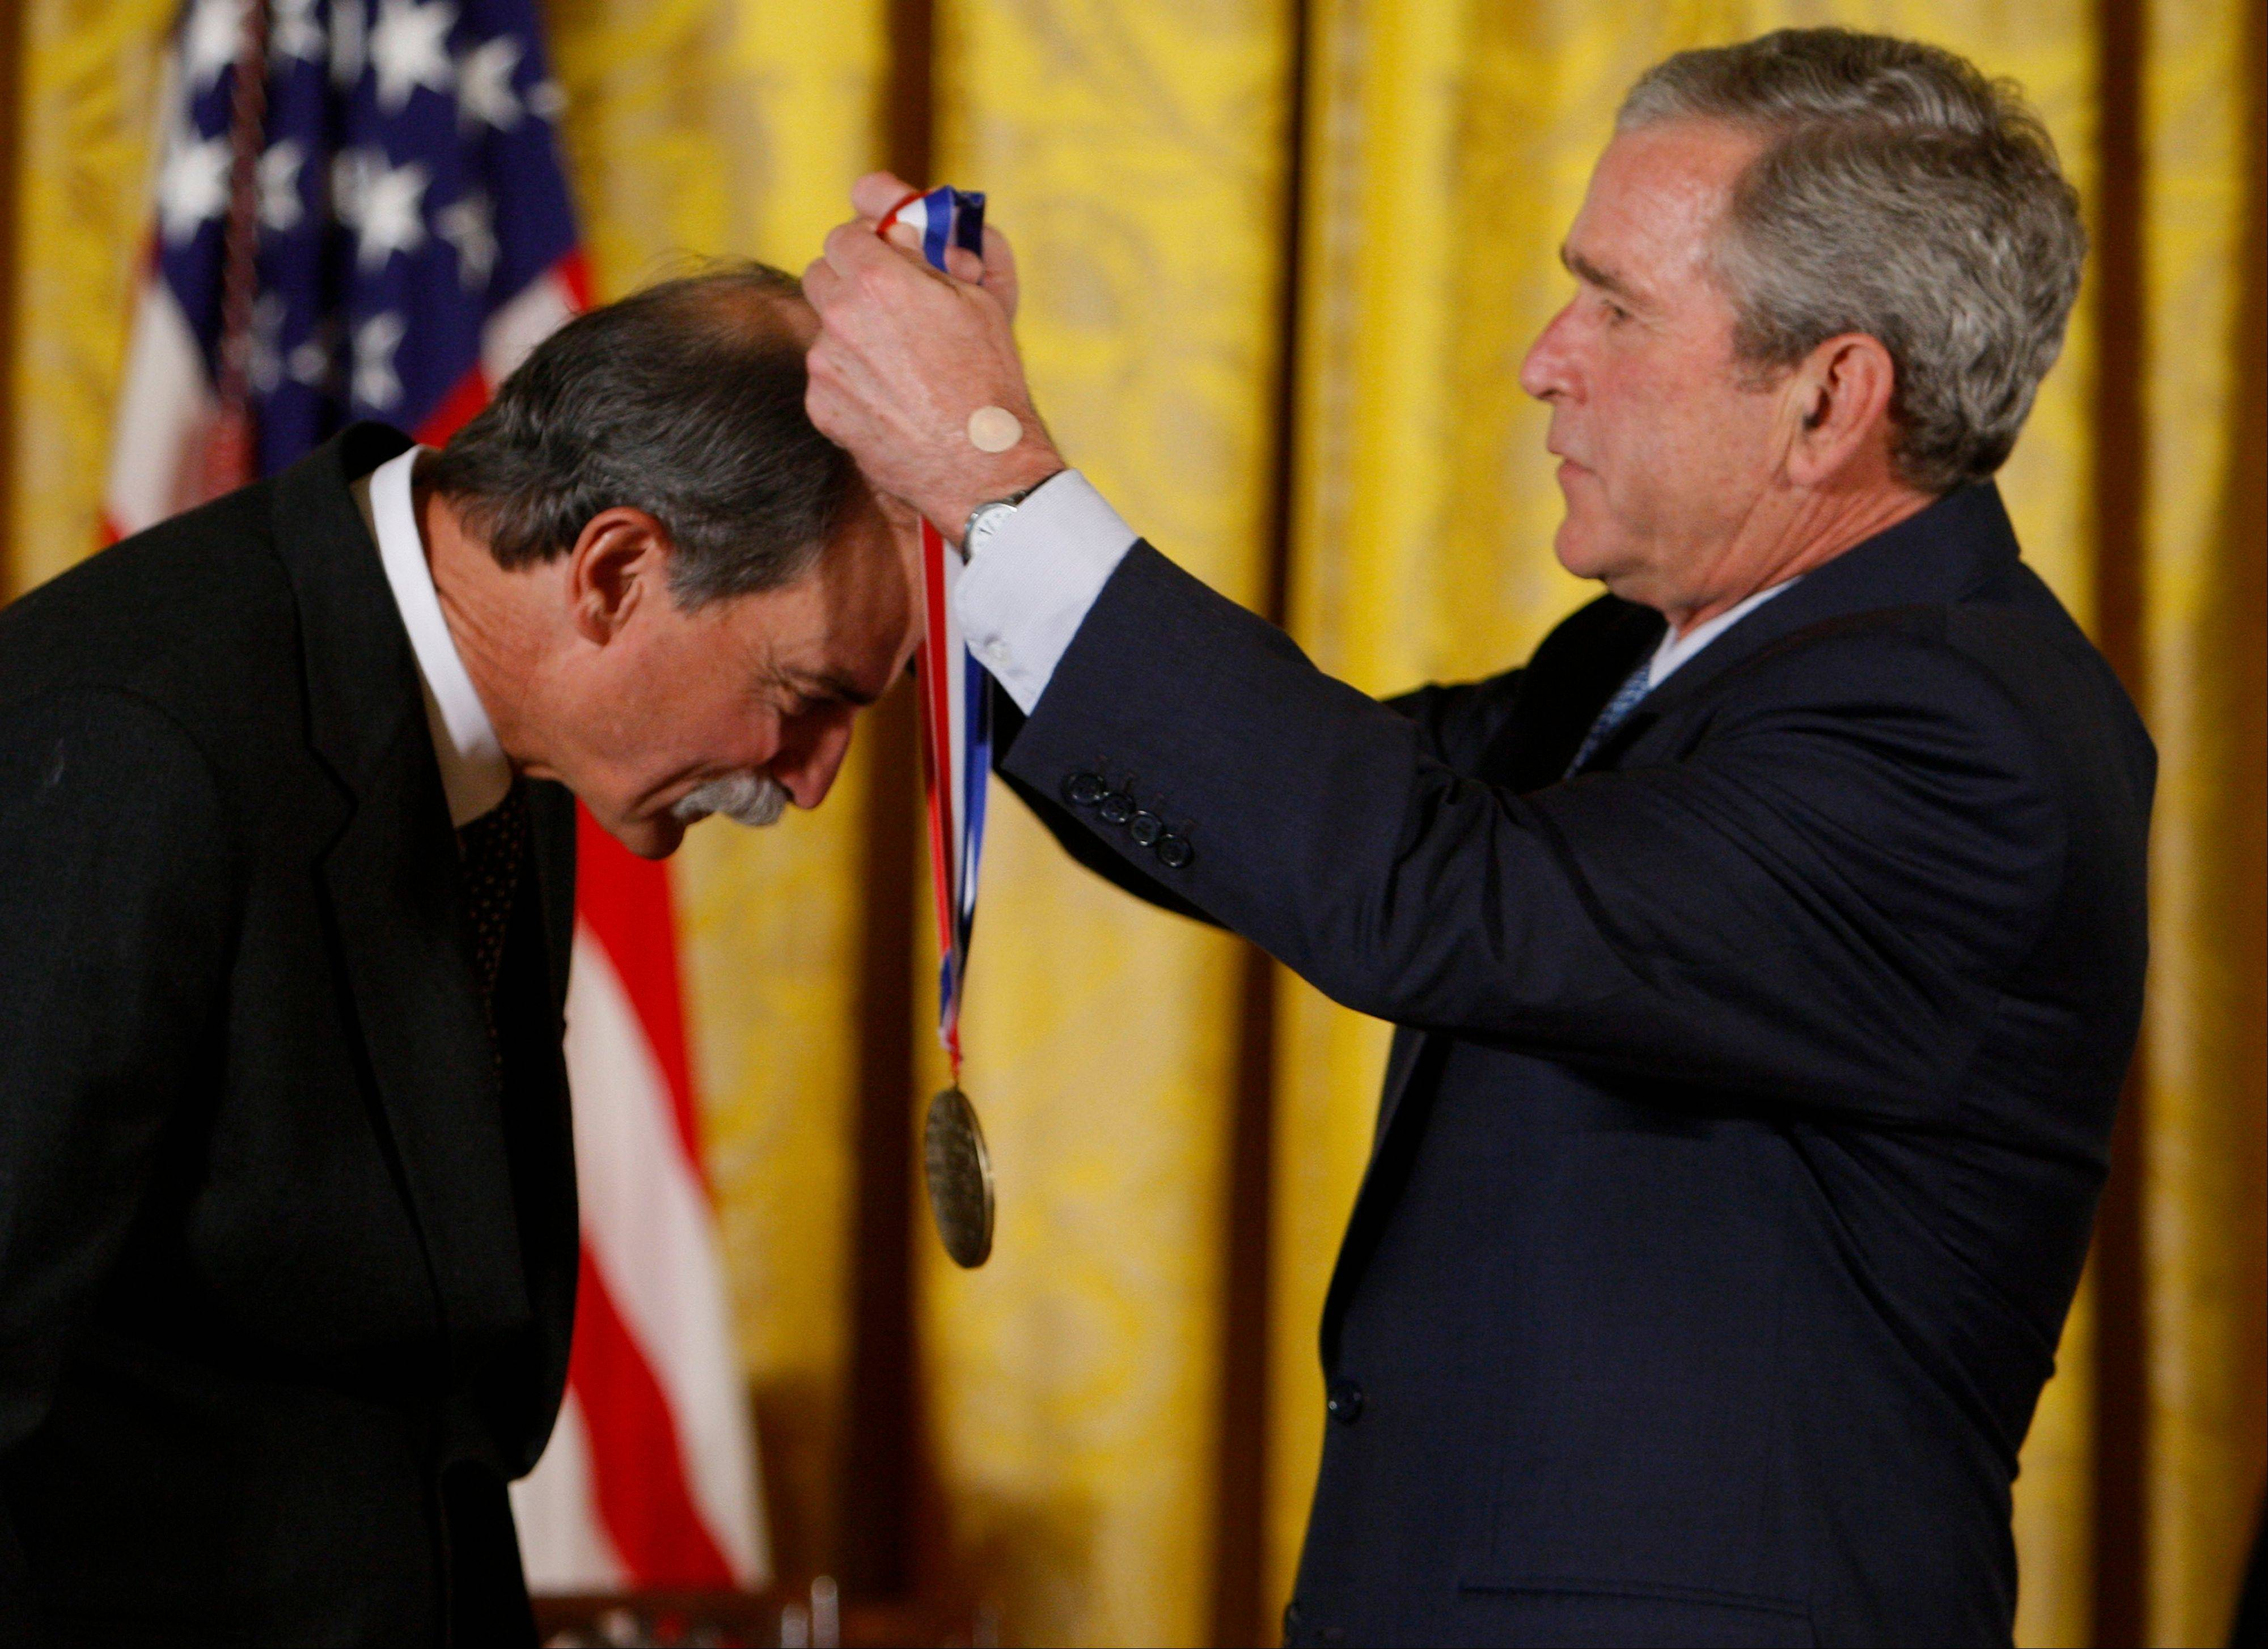 In this 2008 photo, President George W. Bush presents David J. Wineland of the National Institute of Standards and Technology, Boulder, Colo., with the 2007 National Medal of Science award in the East Room of the White House in Washington. Wineland and Frenchman Serge Haroche have won the 2012 Nobel Prize in physics.